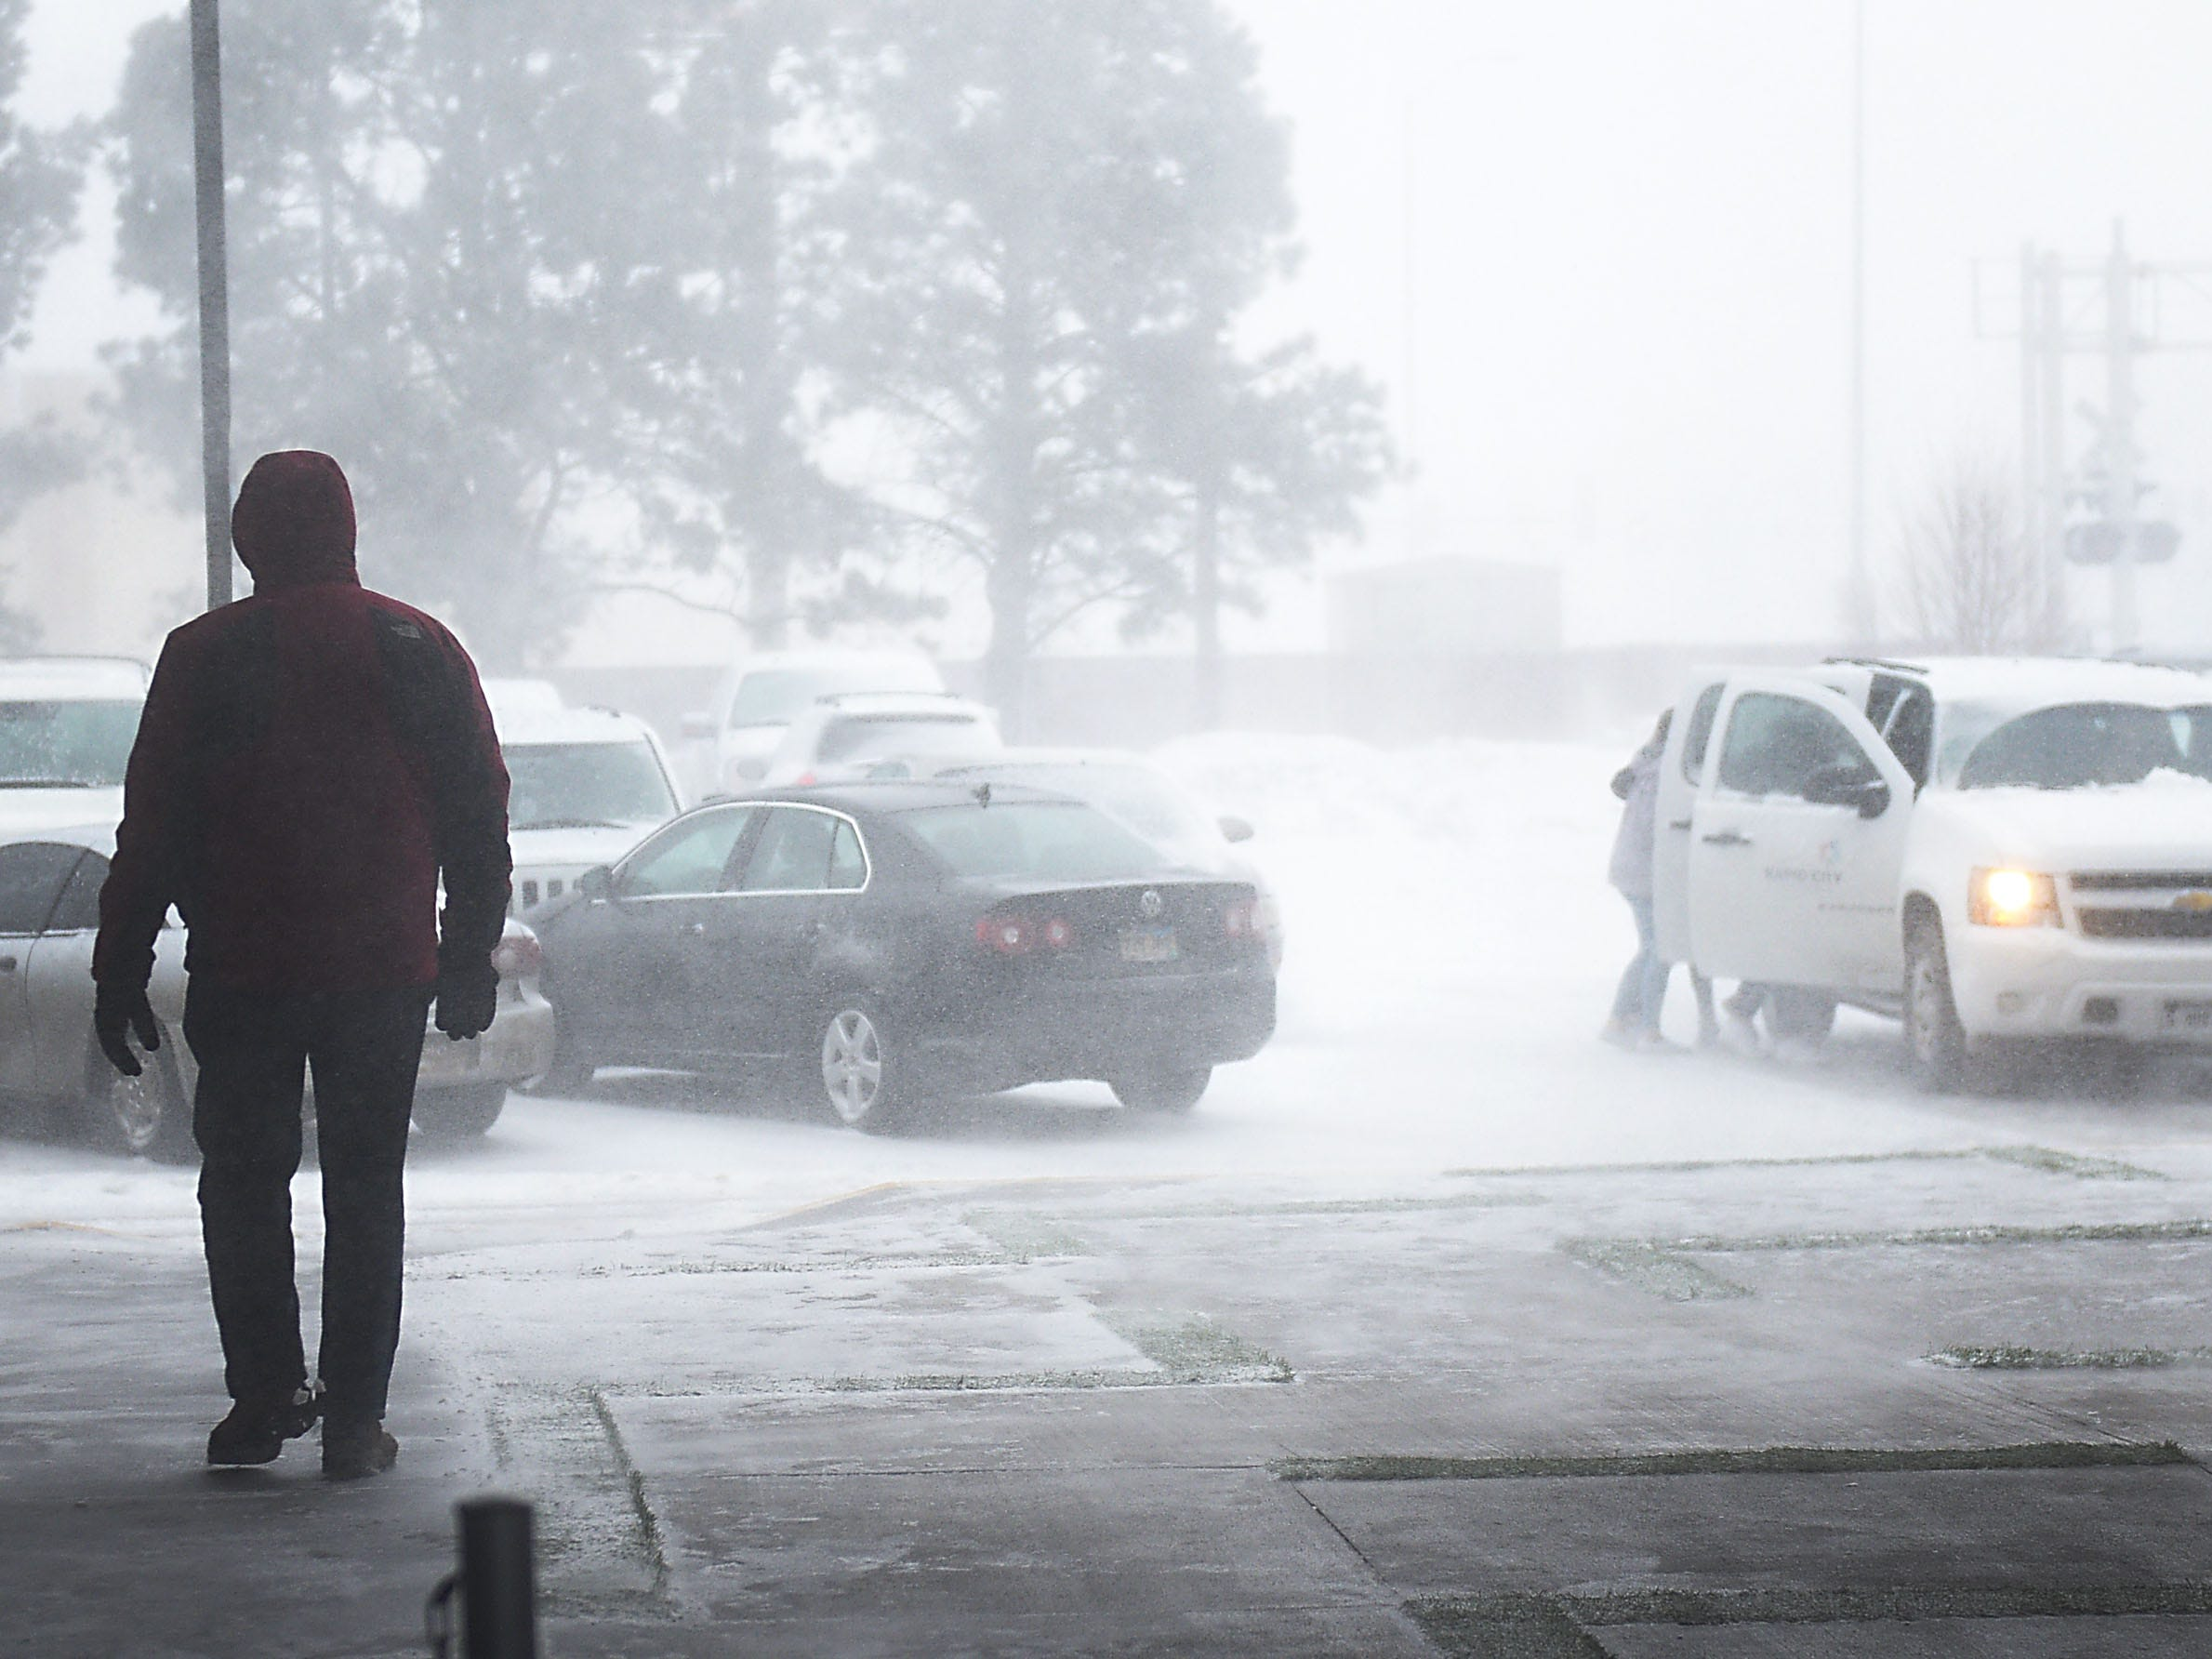 A pedestrian, left, walks to their car as a group of people, right, run to their vehicle during a blizzard in Rapid City Wednesday, March 13, in Rapid City, S.D.